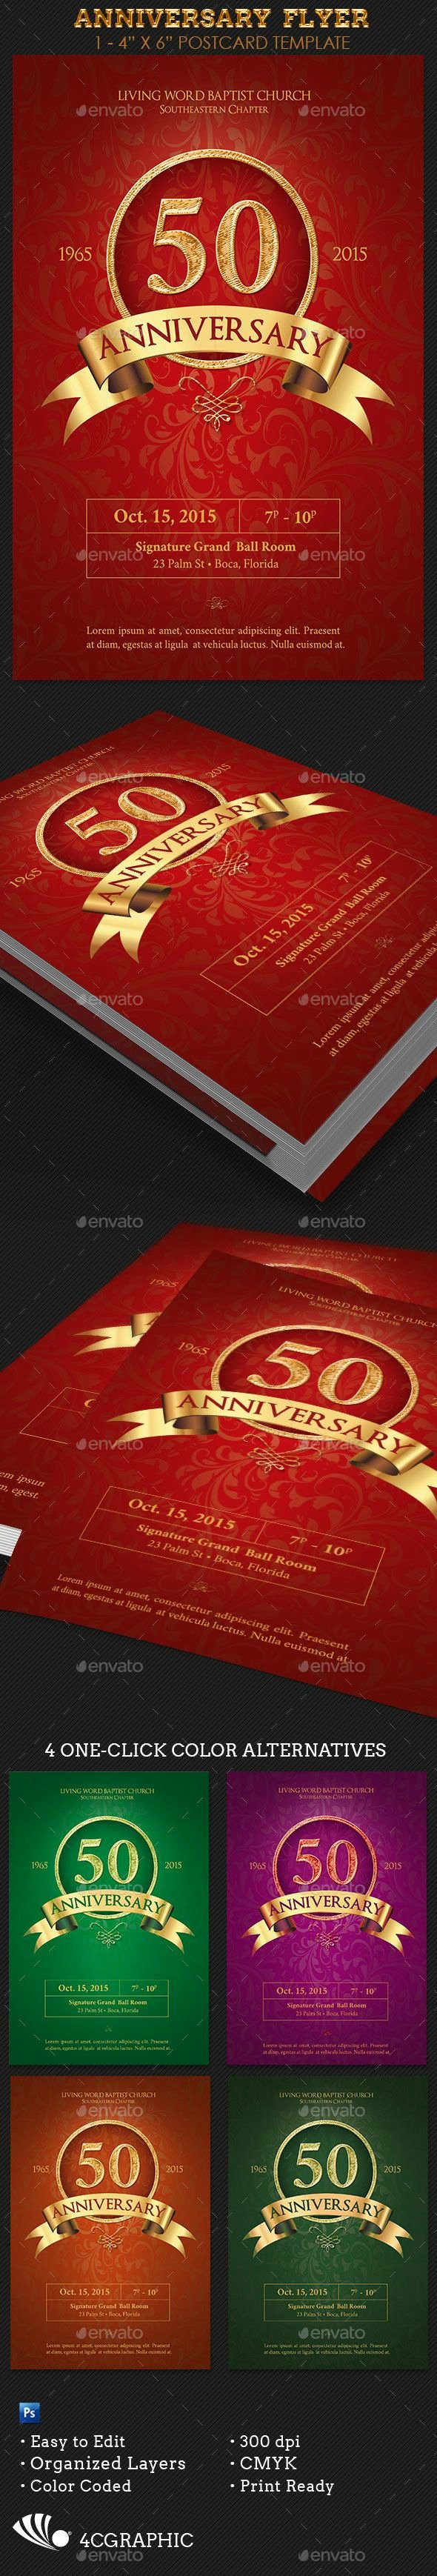 Church Anniversary Program Templates Free Beautiful Anniversary Flyer Template